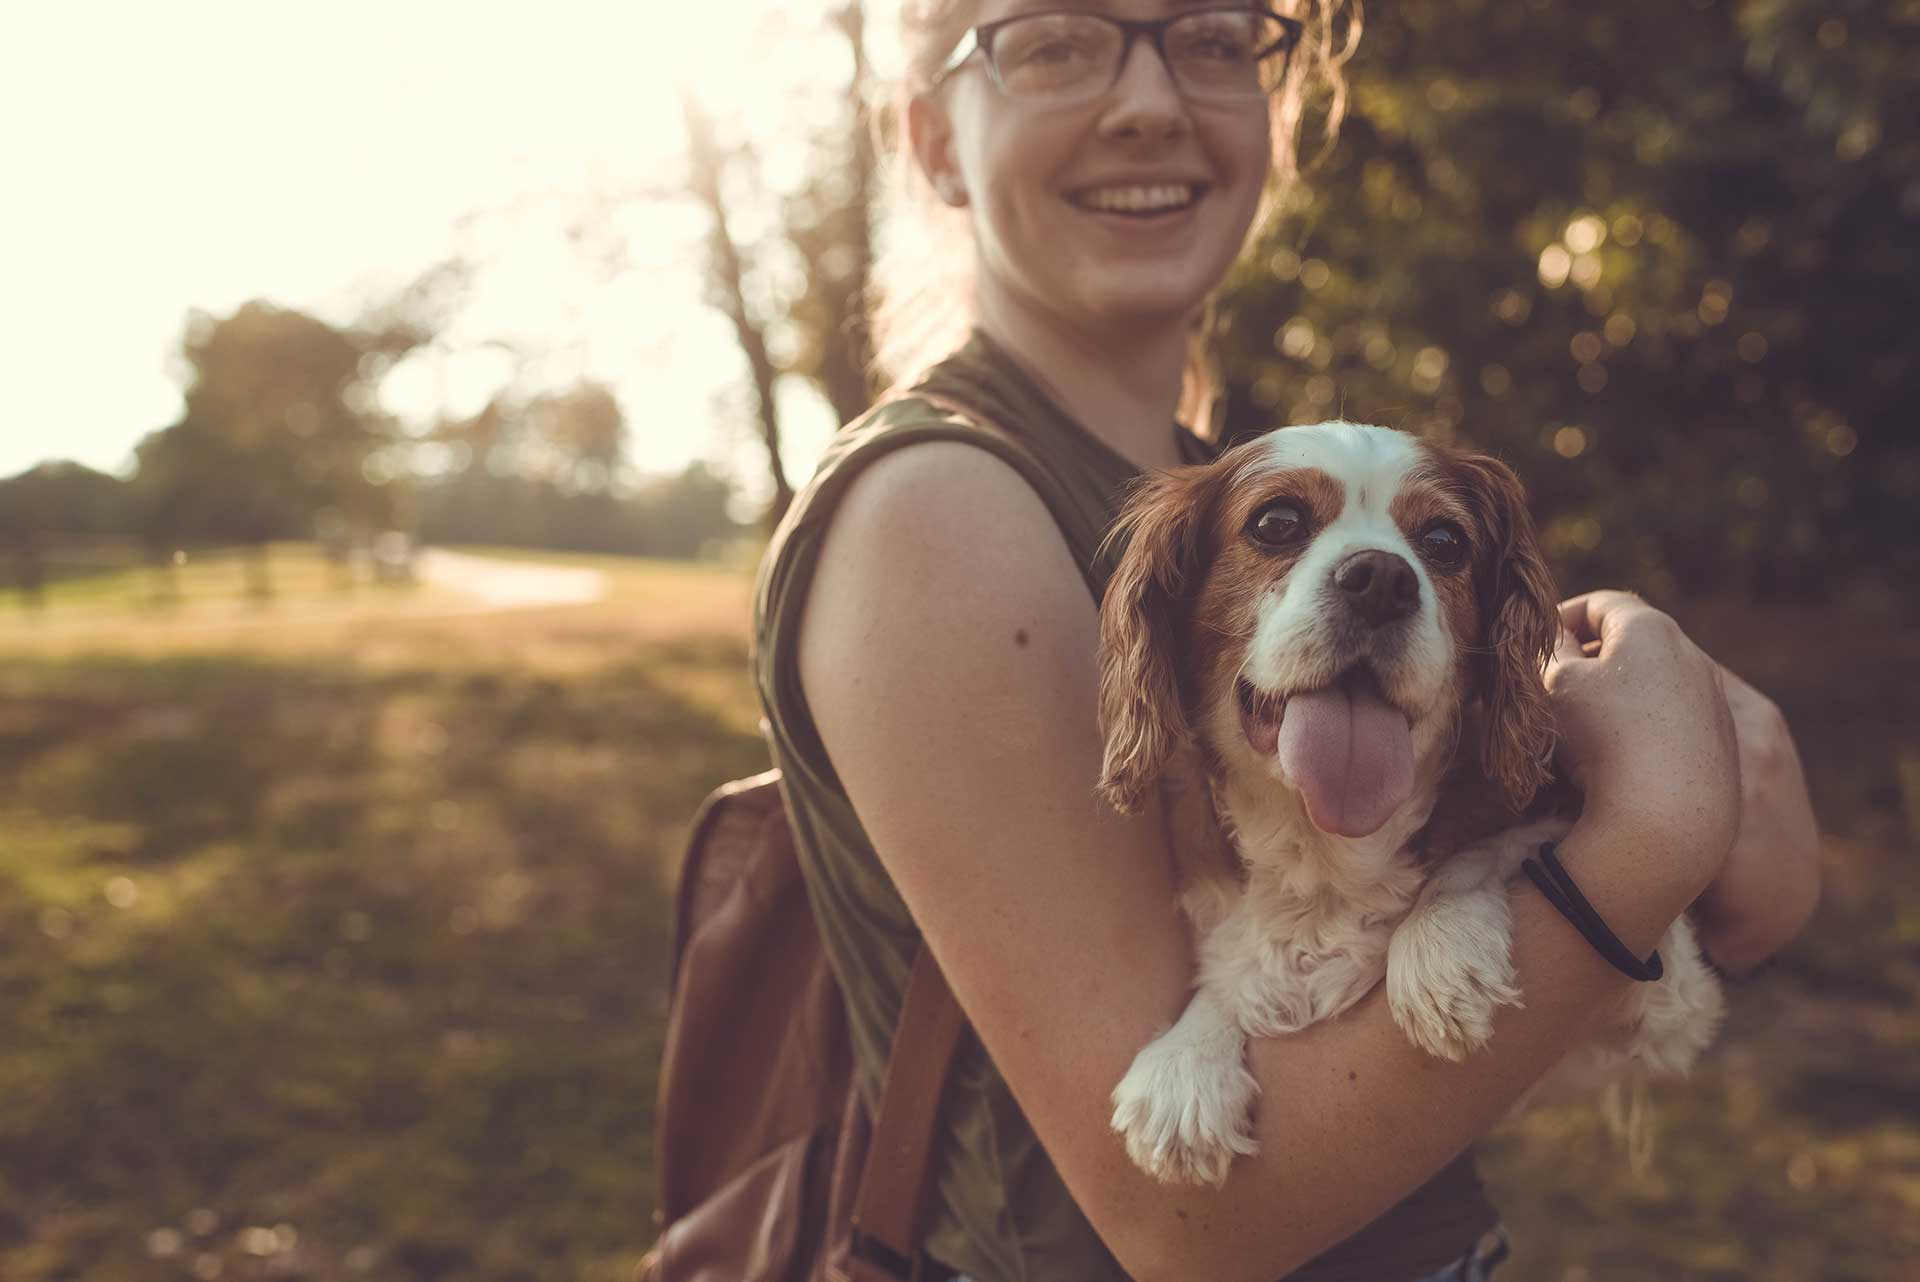 woman in a tank top holding a white and brown dog in her arms outside and smiling